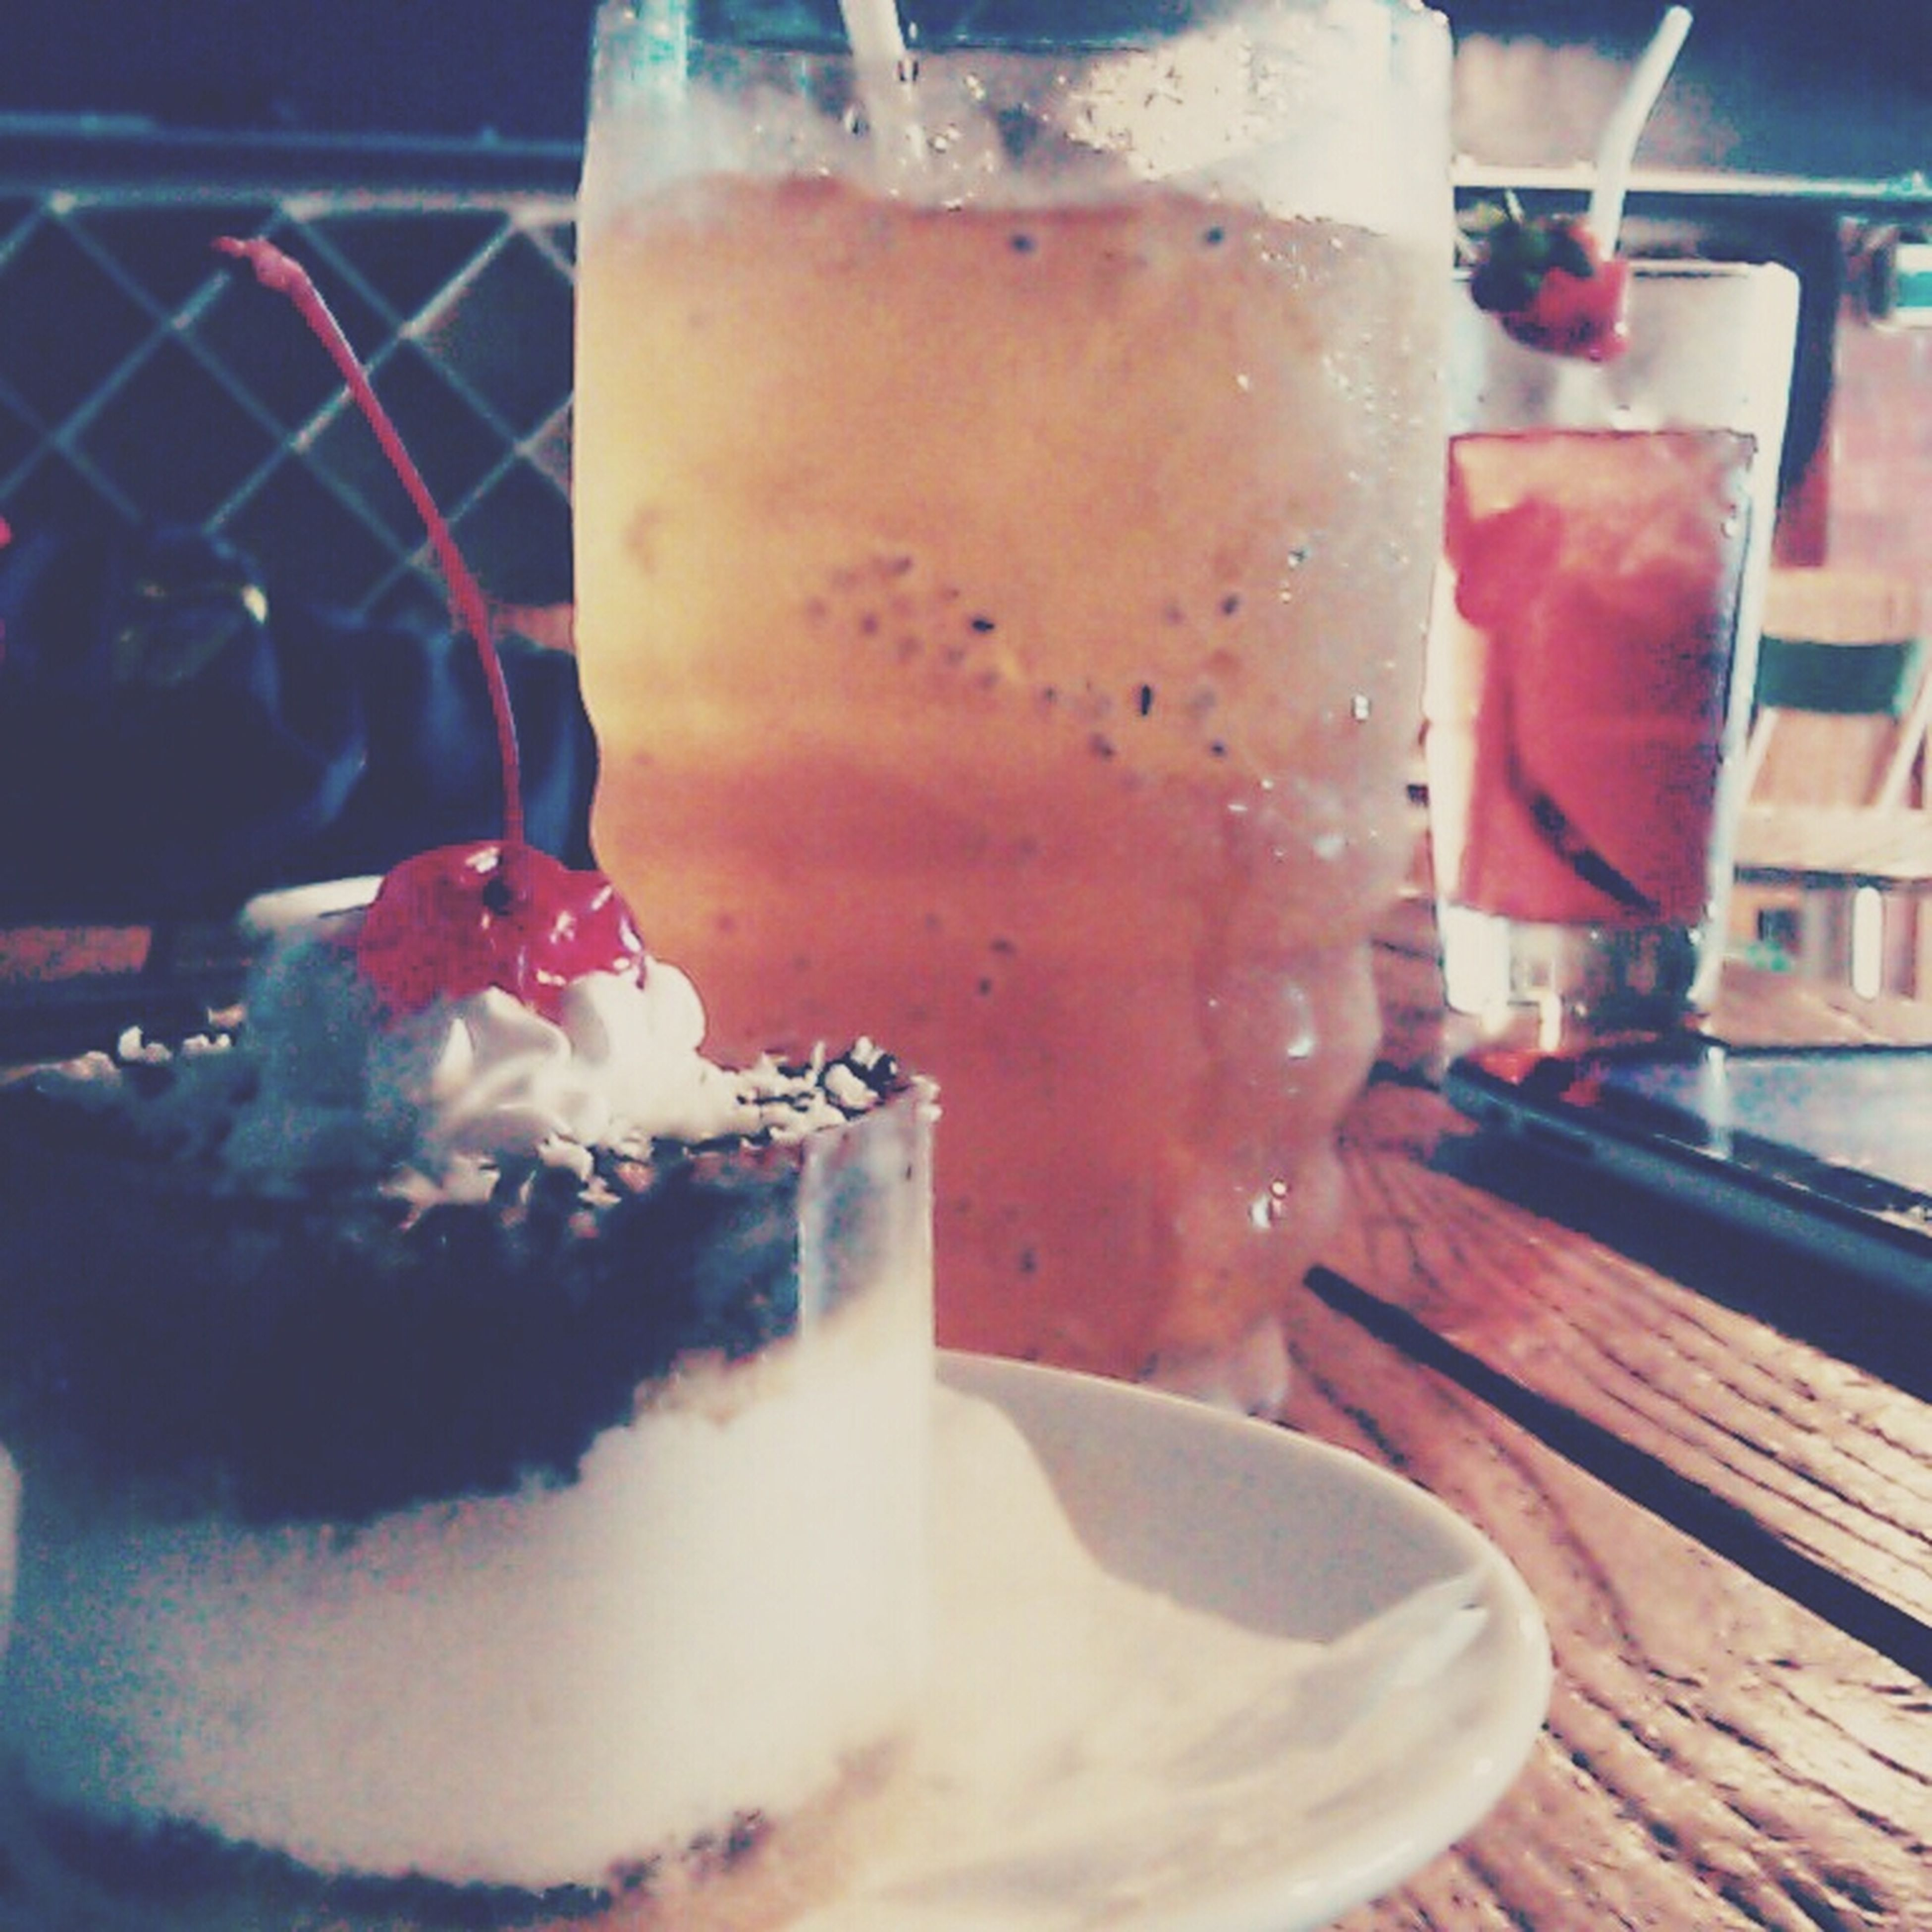 food and drink, freshness, drink, indoors, refreshment, table, close-up, drinking glass, still life, sweet food, food, indulgence, glass - material, focus on foreground, dessert, unhealthy eating, ready-to-eat, ice cream, restaurant